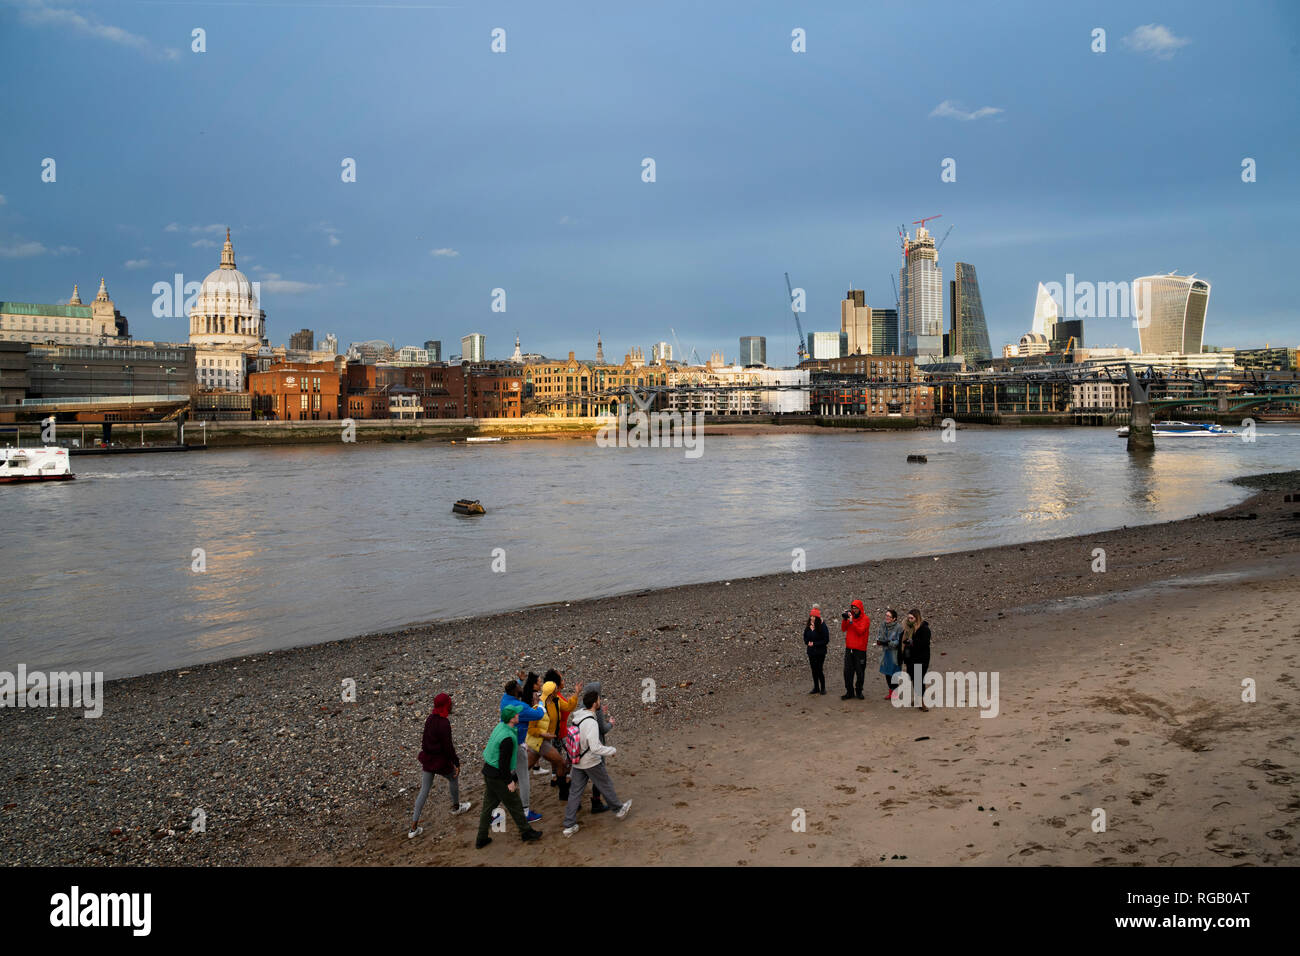 The Beach at Southbank with St. Pauls and the Square mile, London, - Stock Image